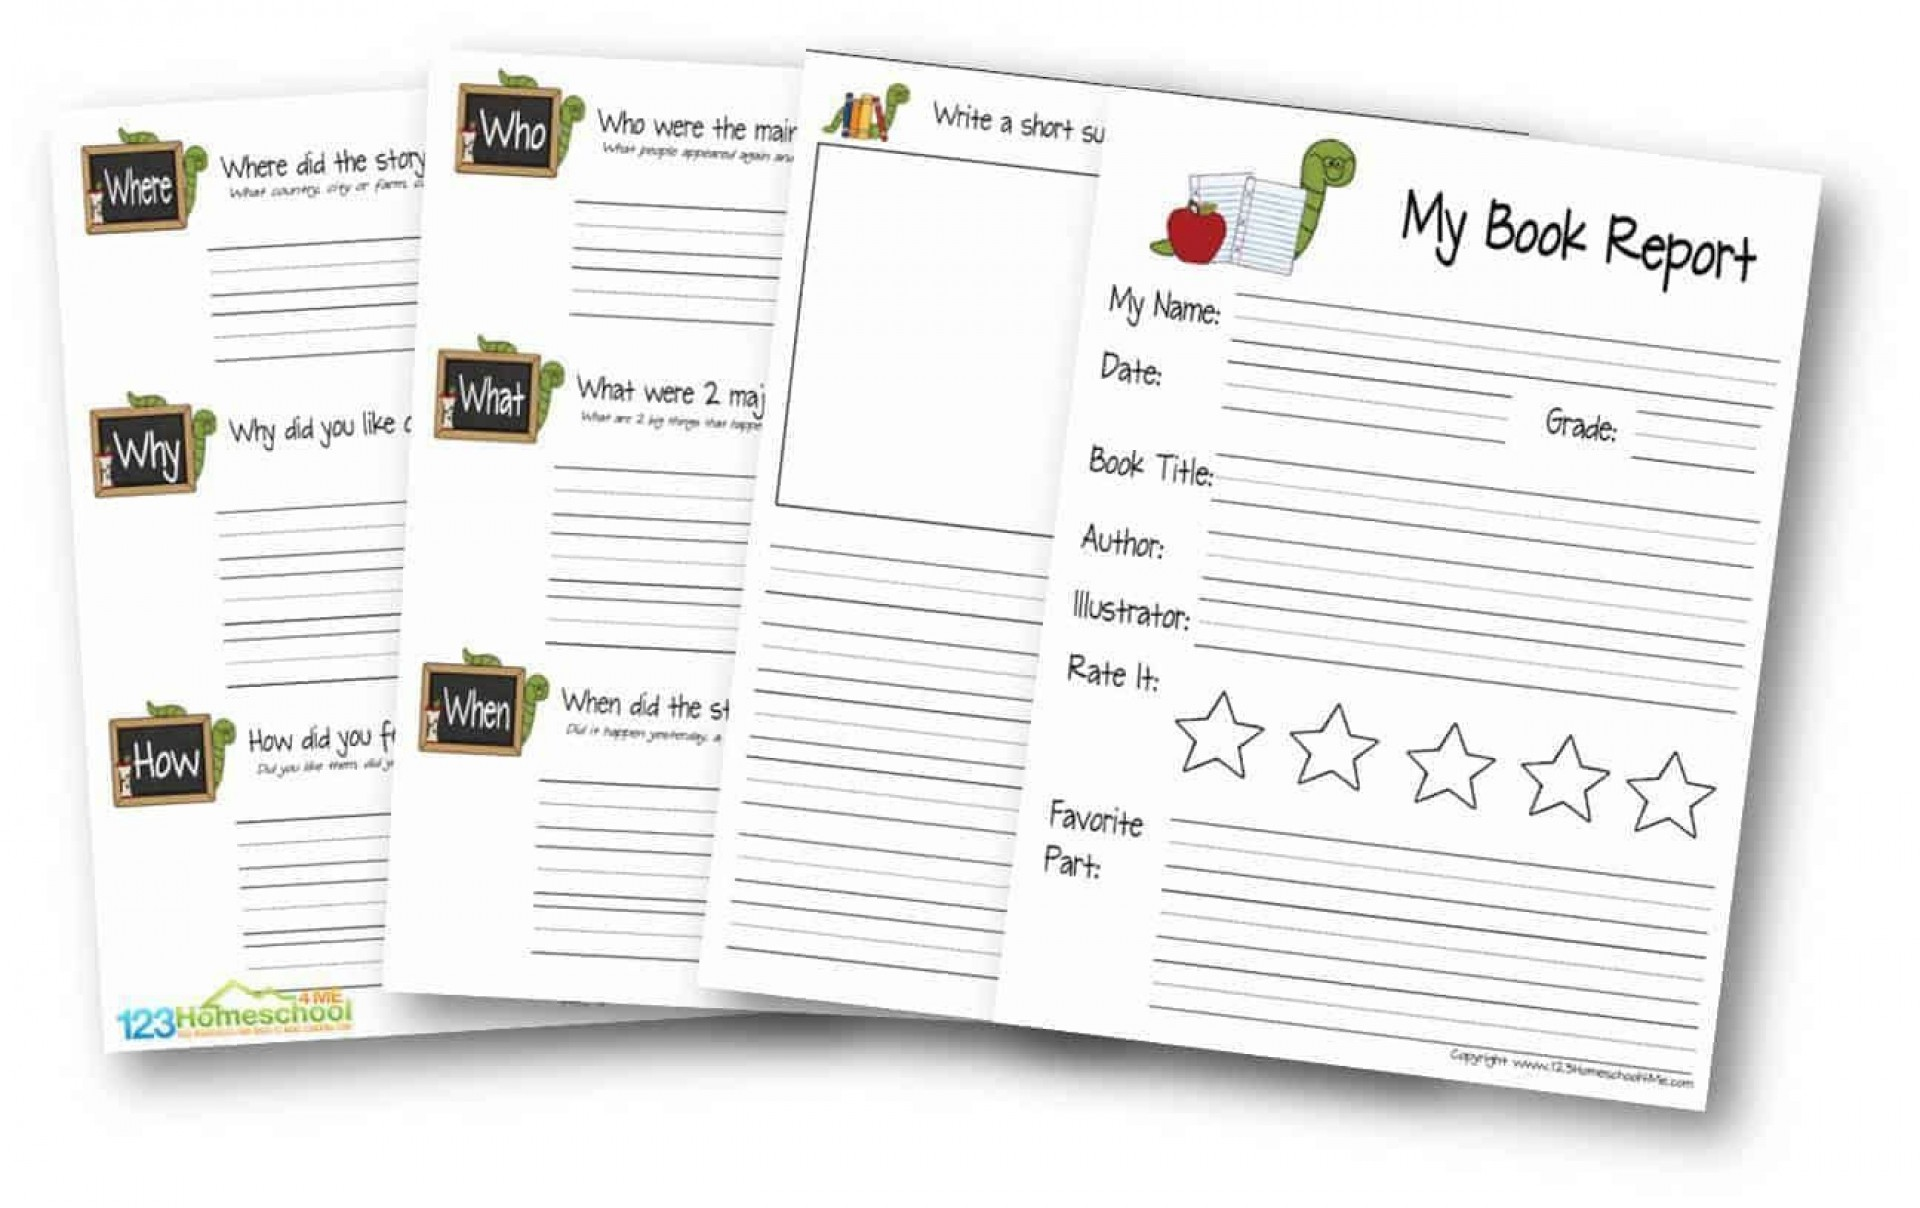 008 Awful Blank Book Report Form 6th Grade Sample  Free Printable Template1920